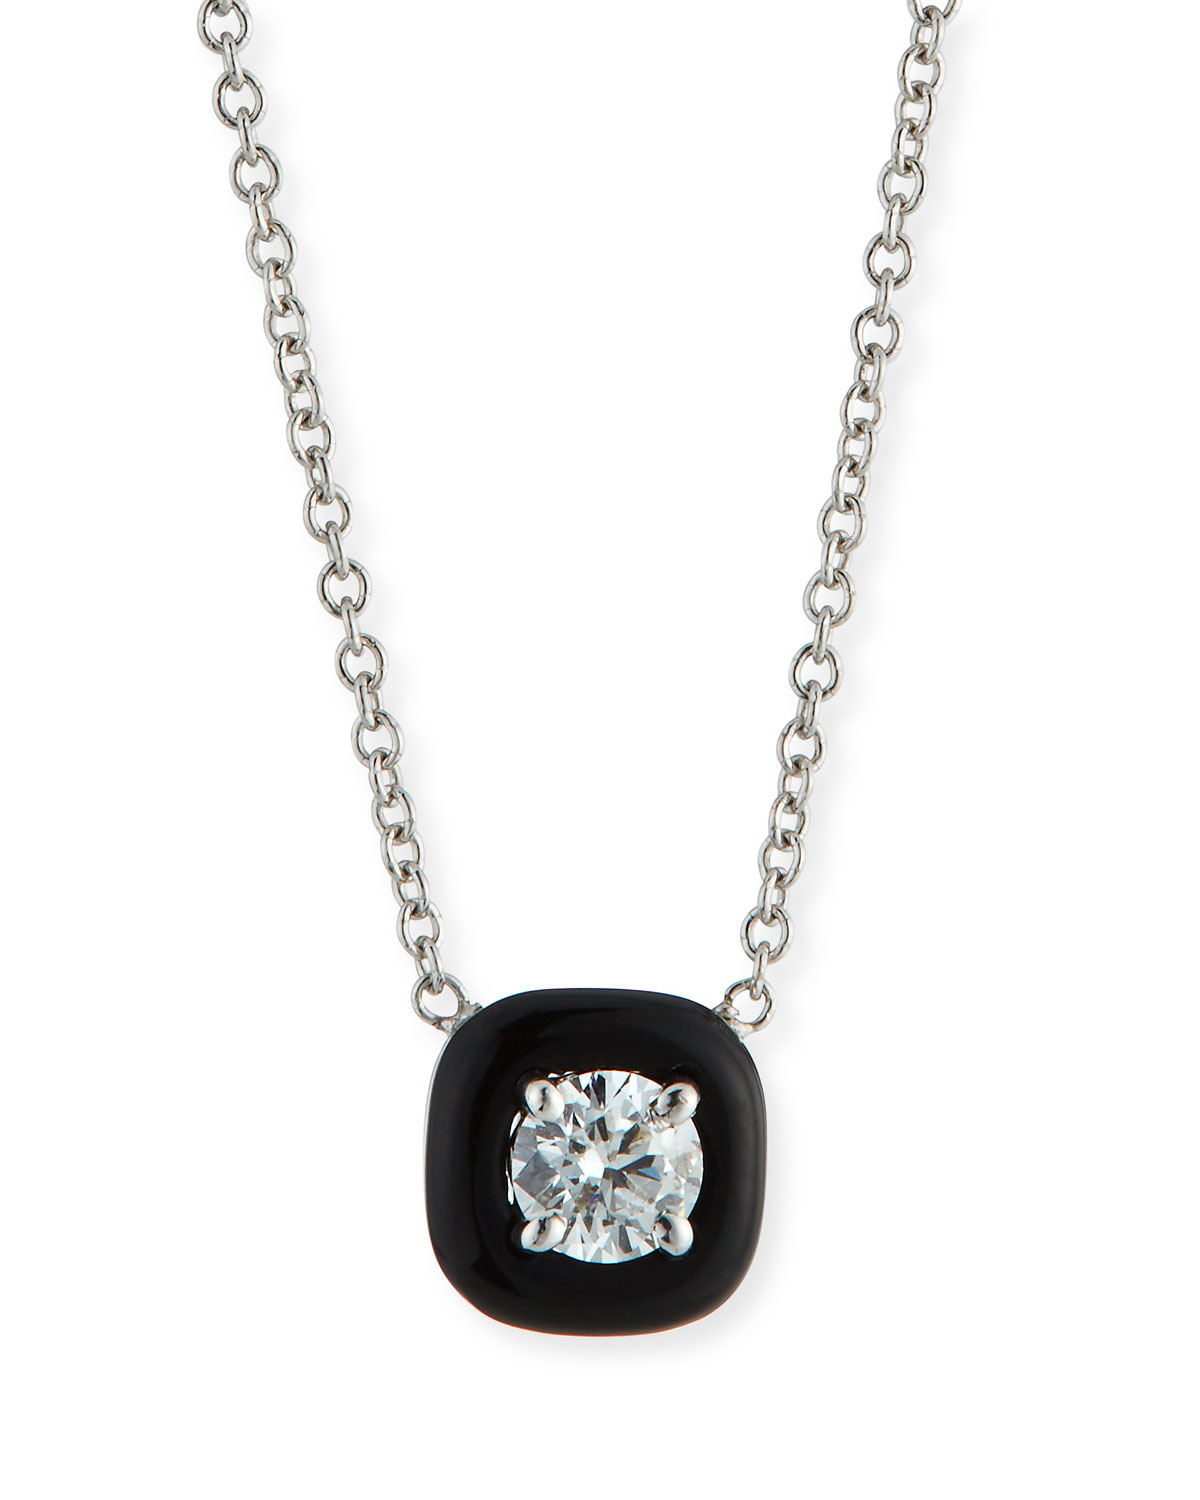 Nikos Koulis 18k Oui Diamond & Black Enamel Necklace